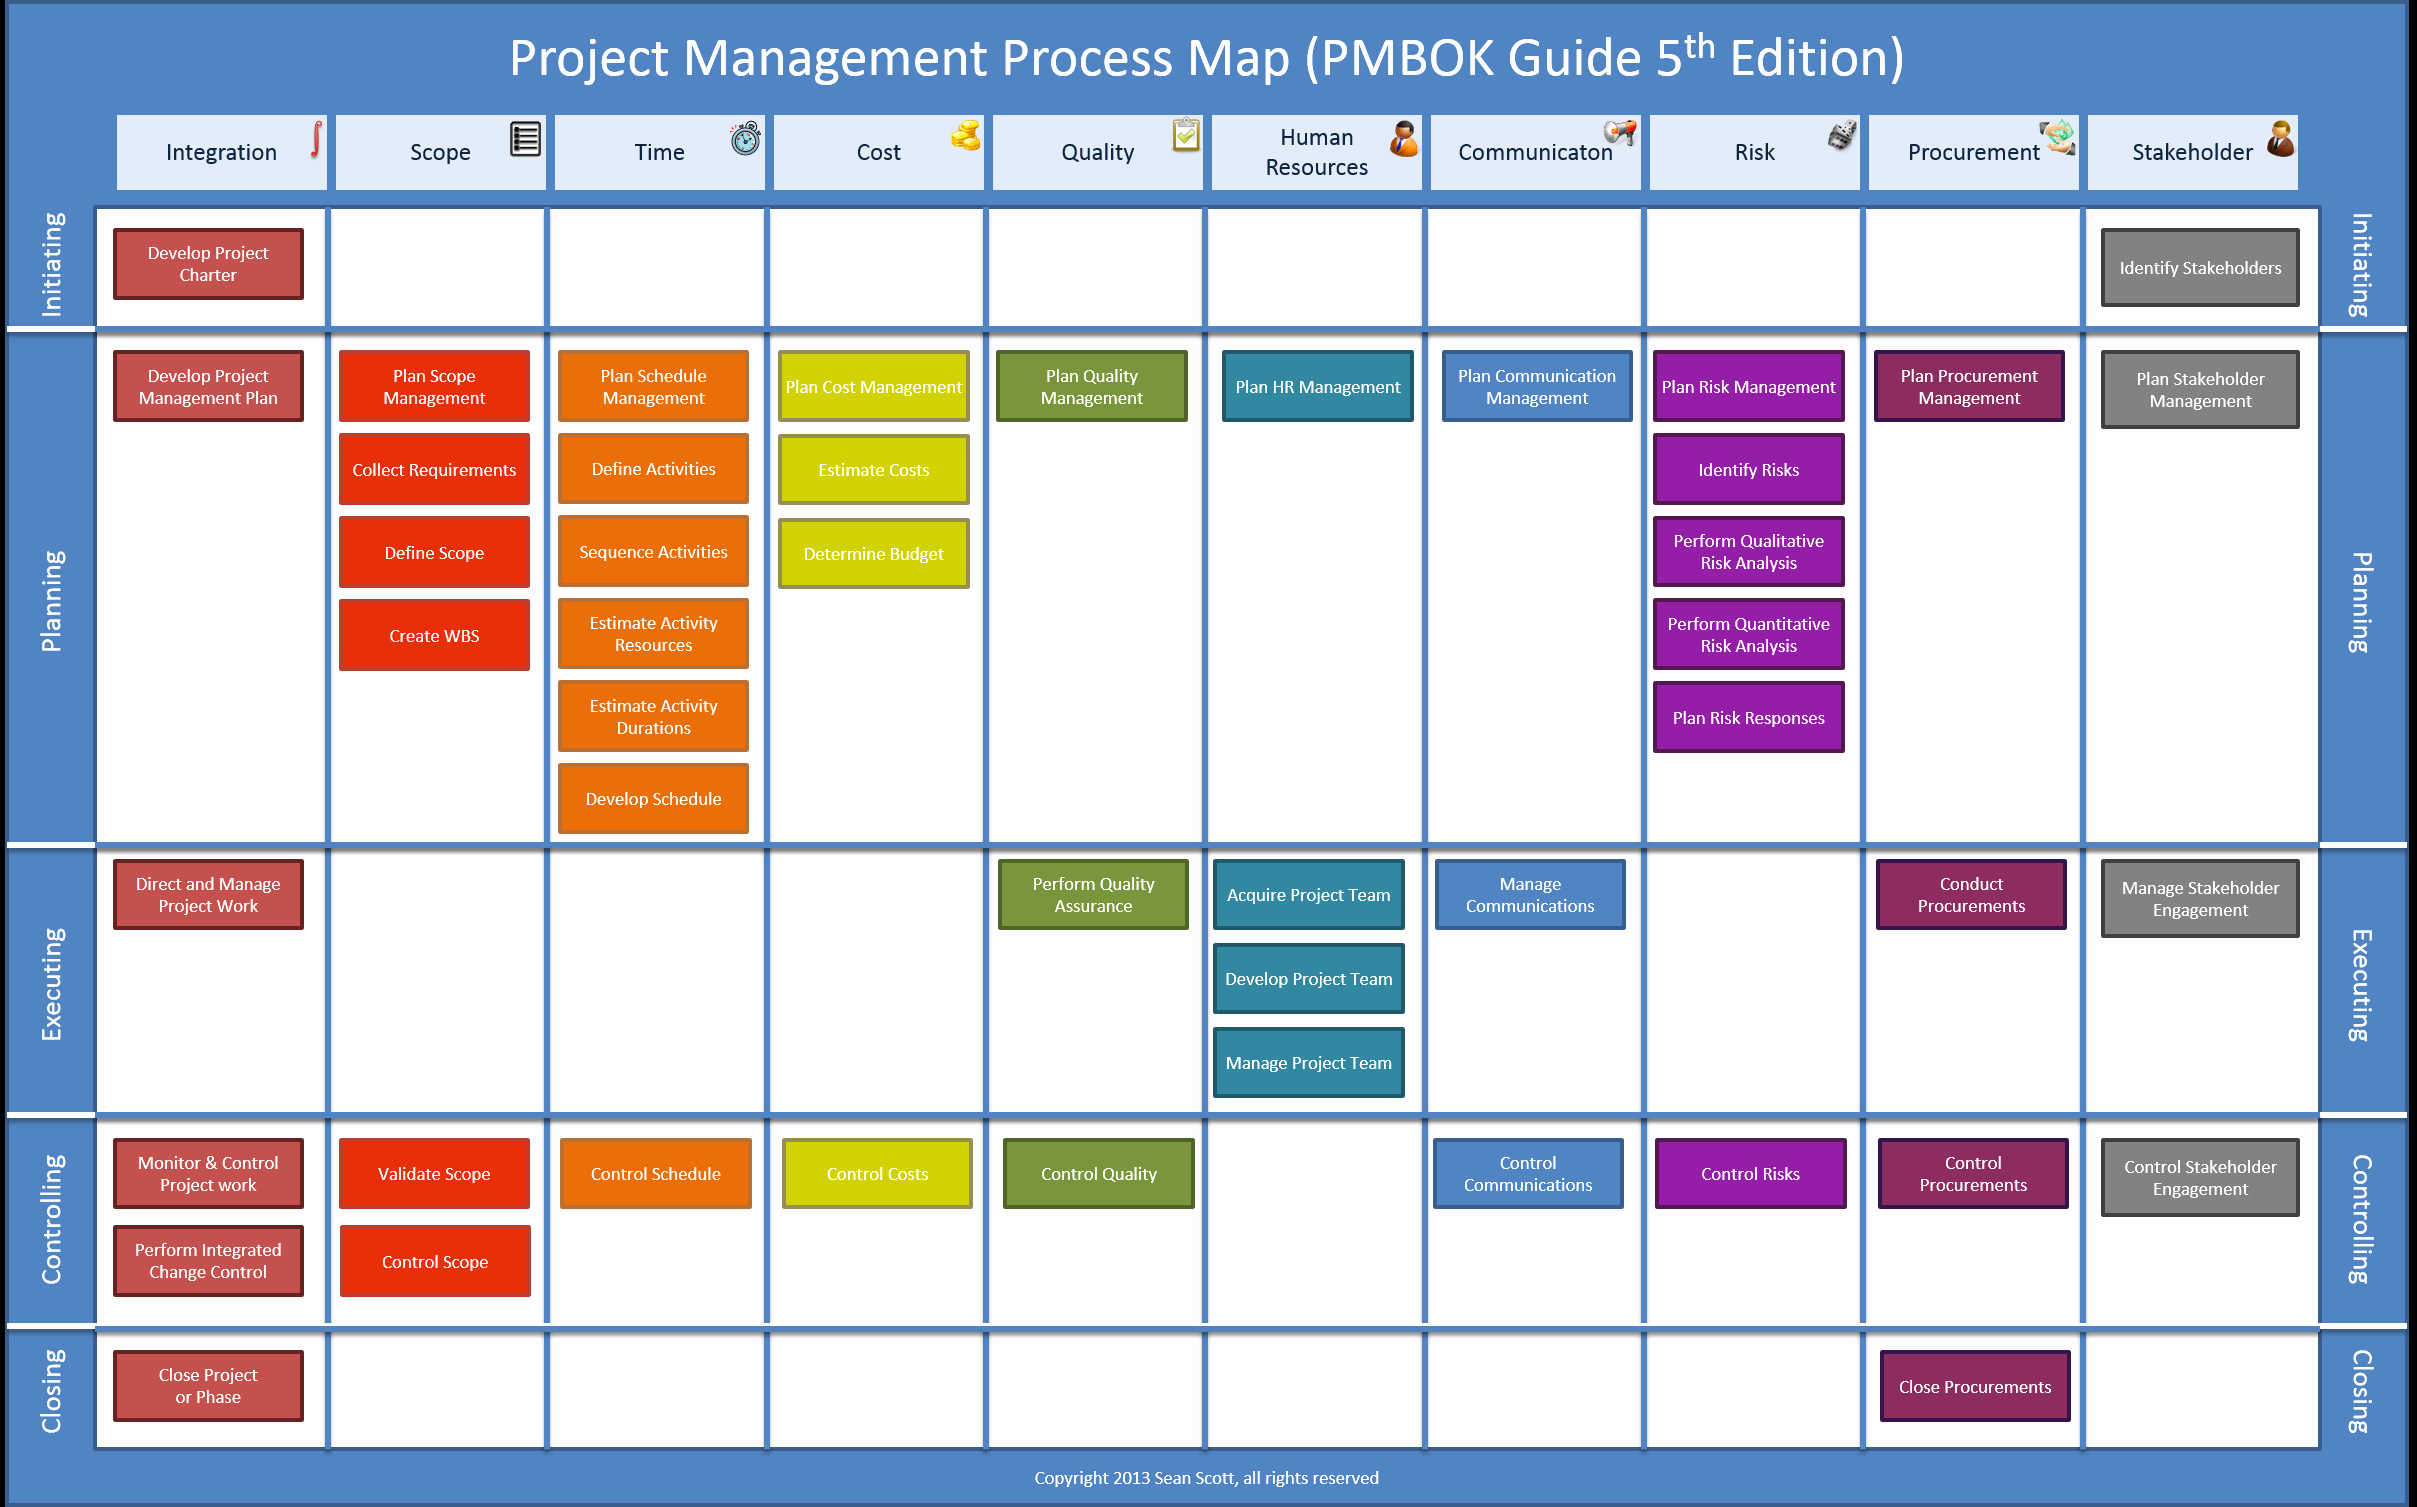 Project Management Plan Template Pmbok Elegant Pmbok Process Map 5th Edition